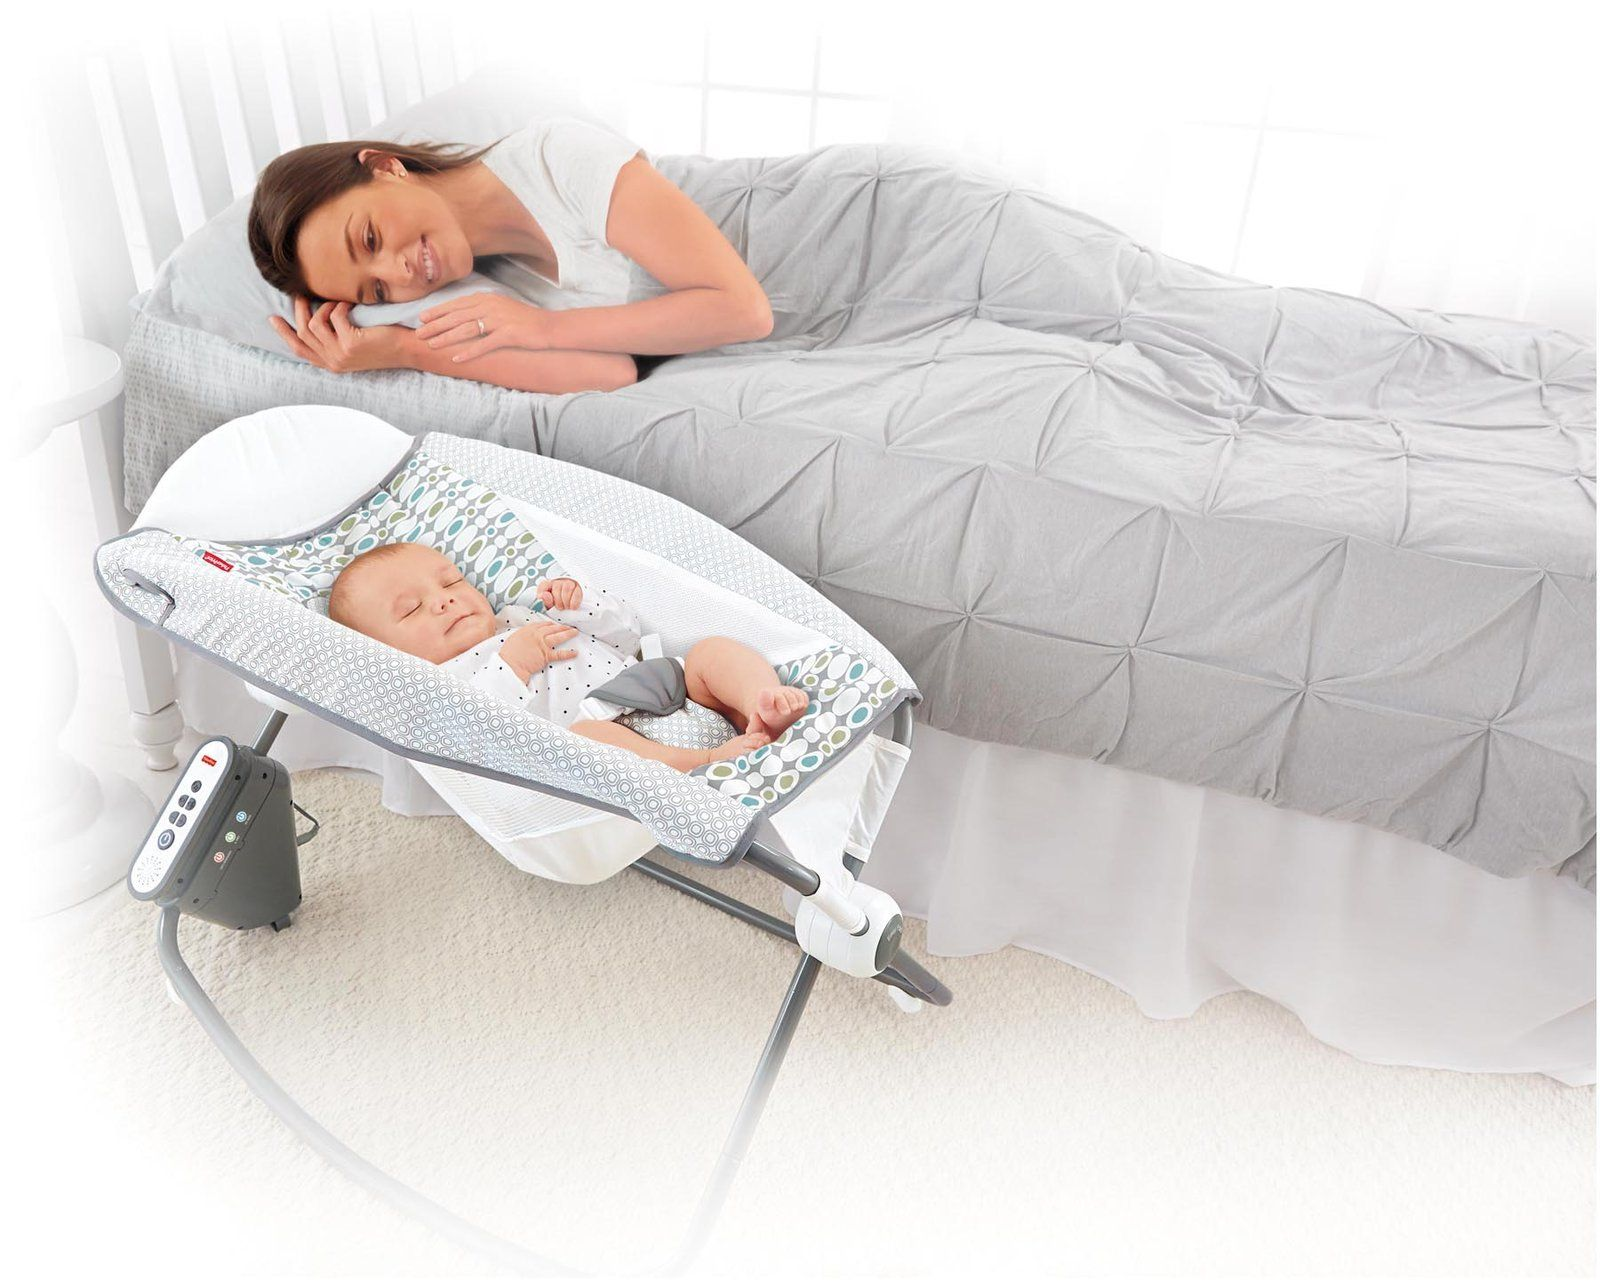 The new Fisher Price Rock n Play Newborn Sleeper has a motor for